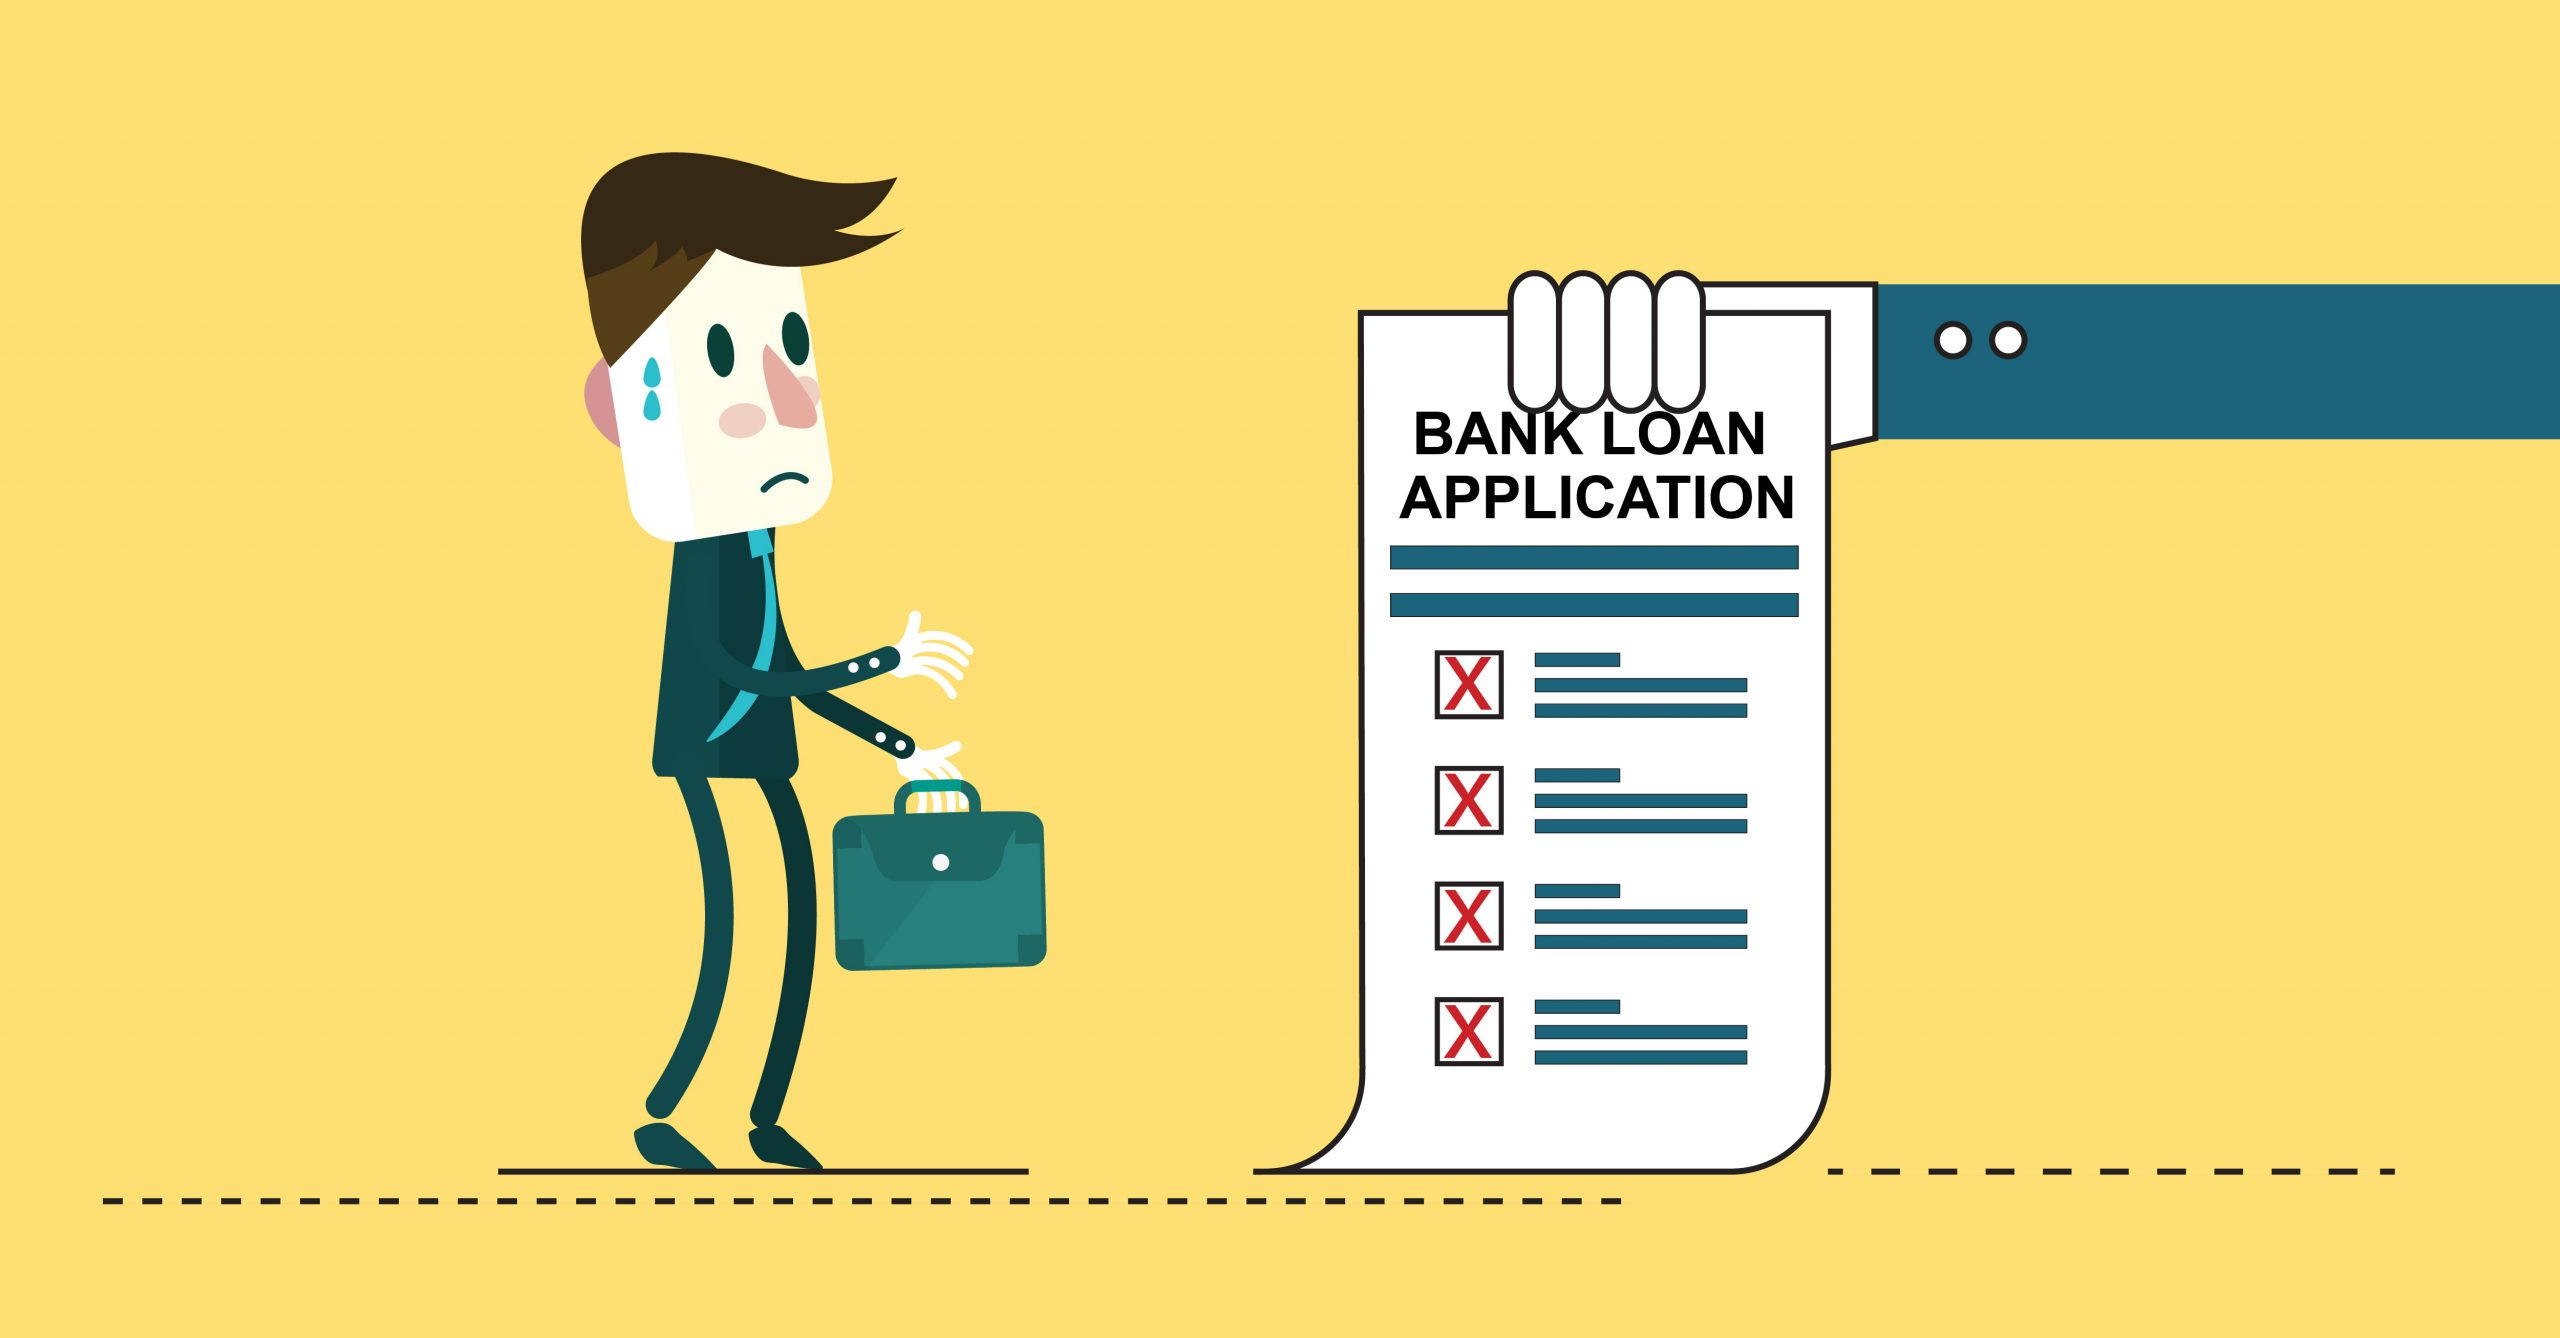 Your Bank Has Rejected Your Loan Application, Now What?